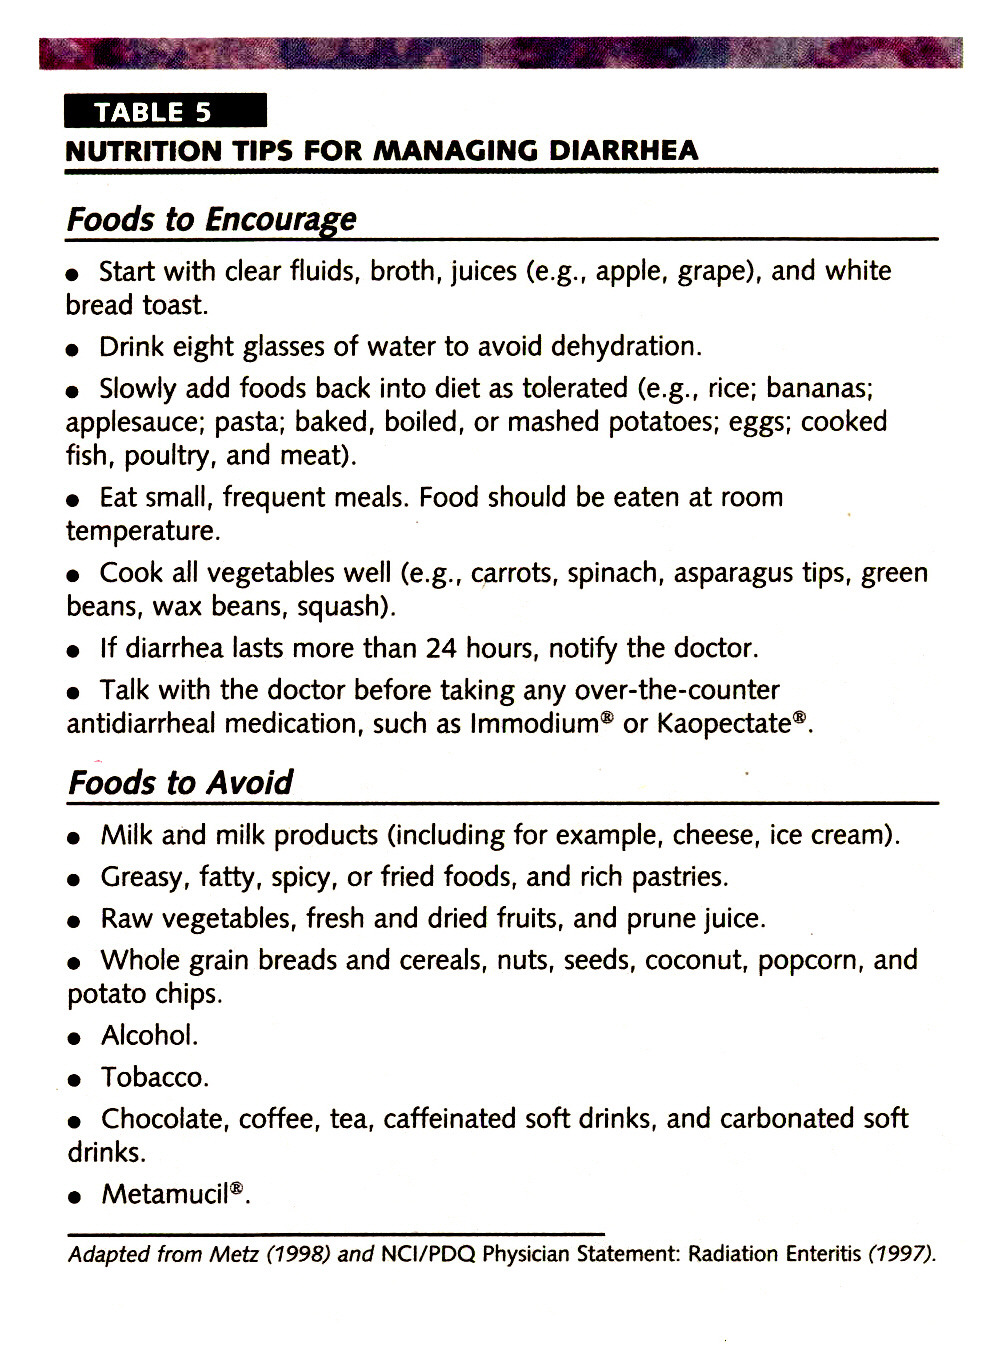 TABLE 5NUTRITION TIPS FOR MANAGING DIARRHEA